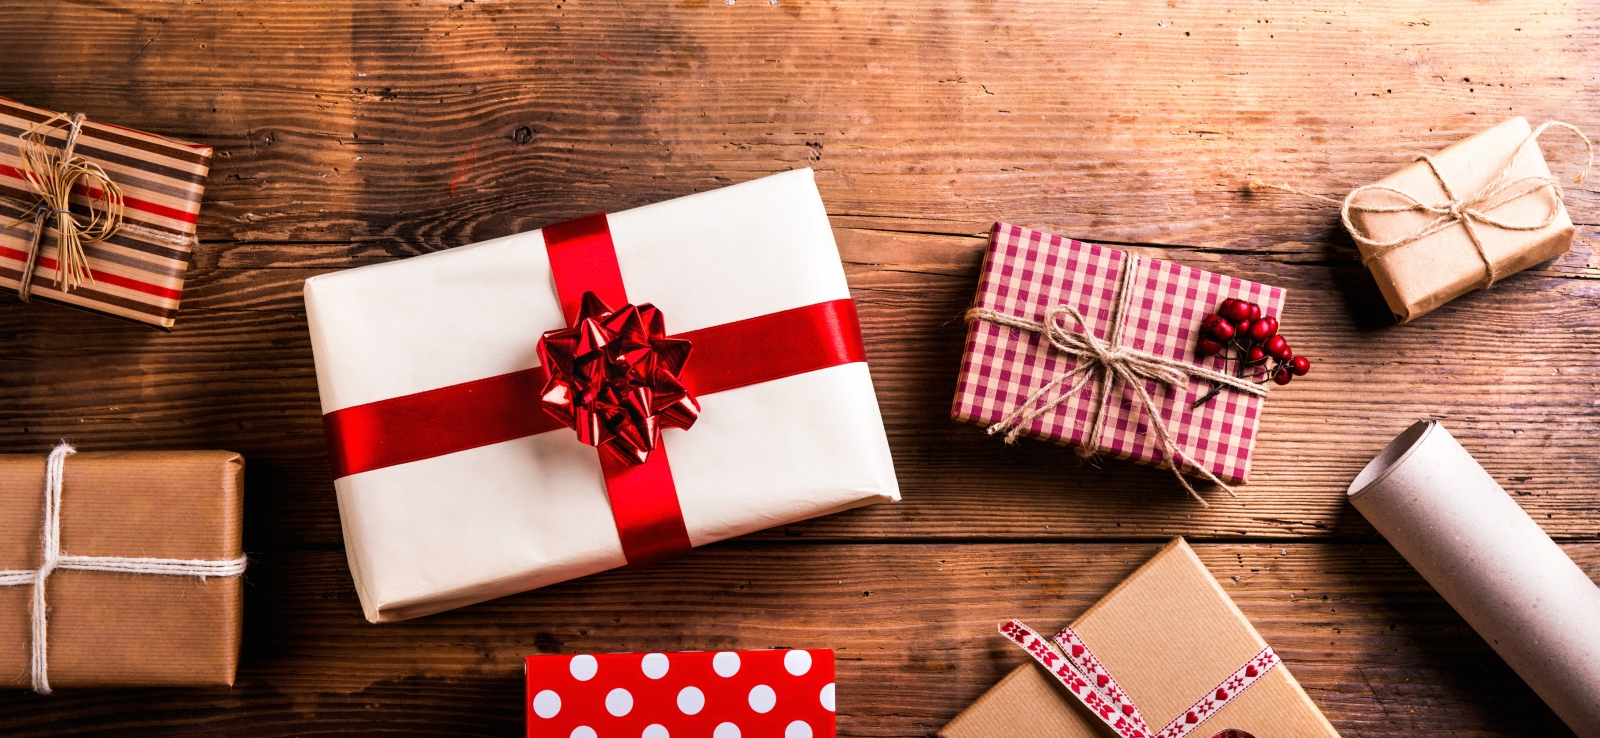 Brands Look to Physical Retail to Maximize Holiday Sales